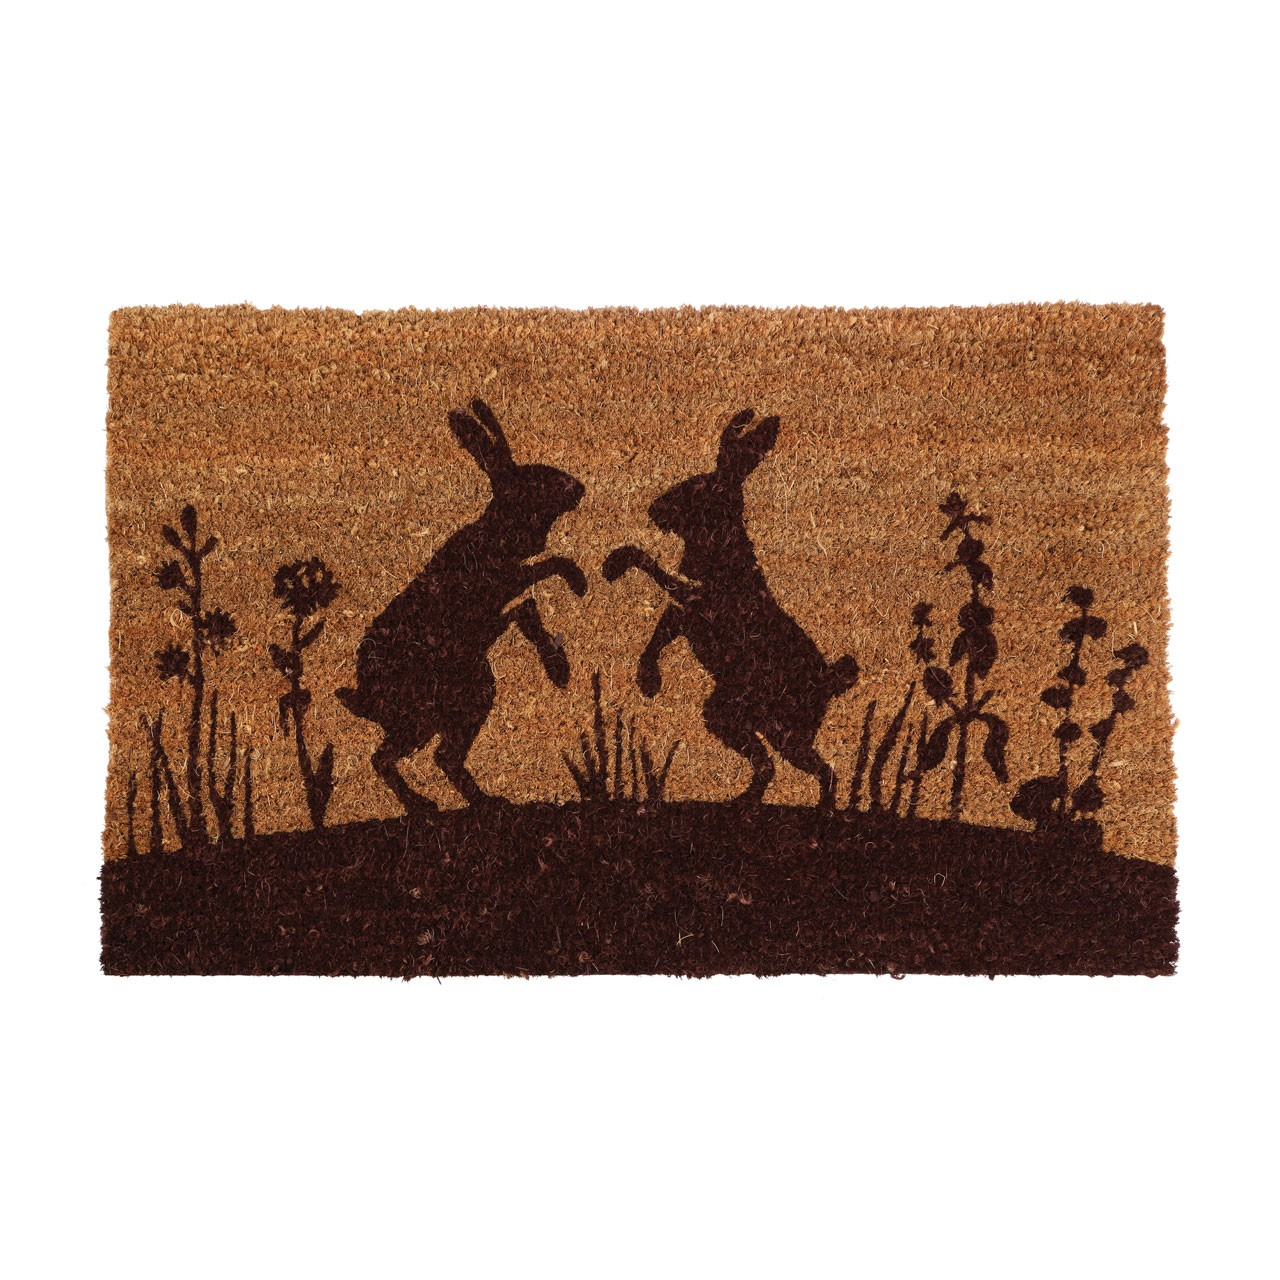 "Prime Furnishing ""Hare"" Doormat, PVC Backed Coir"